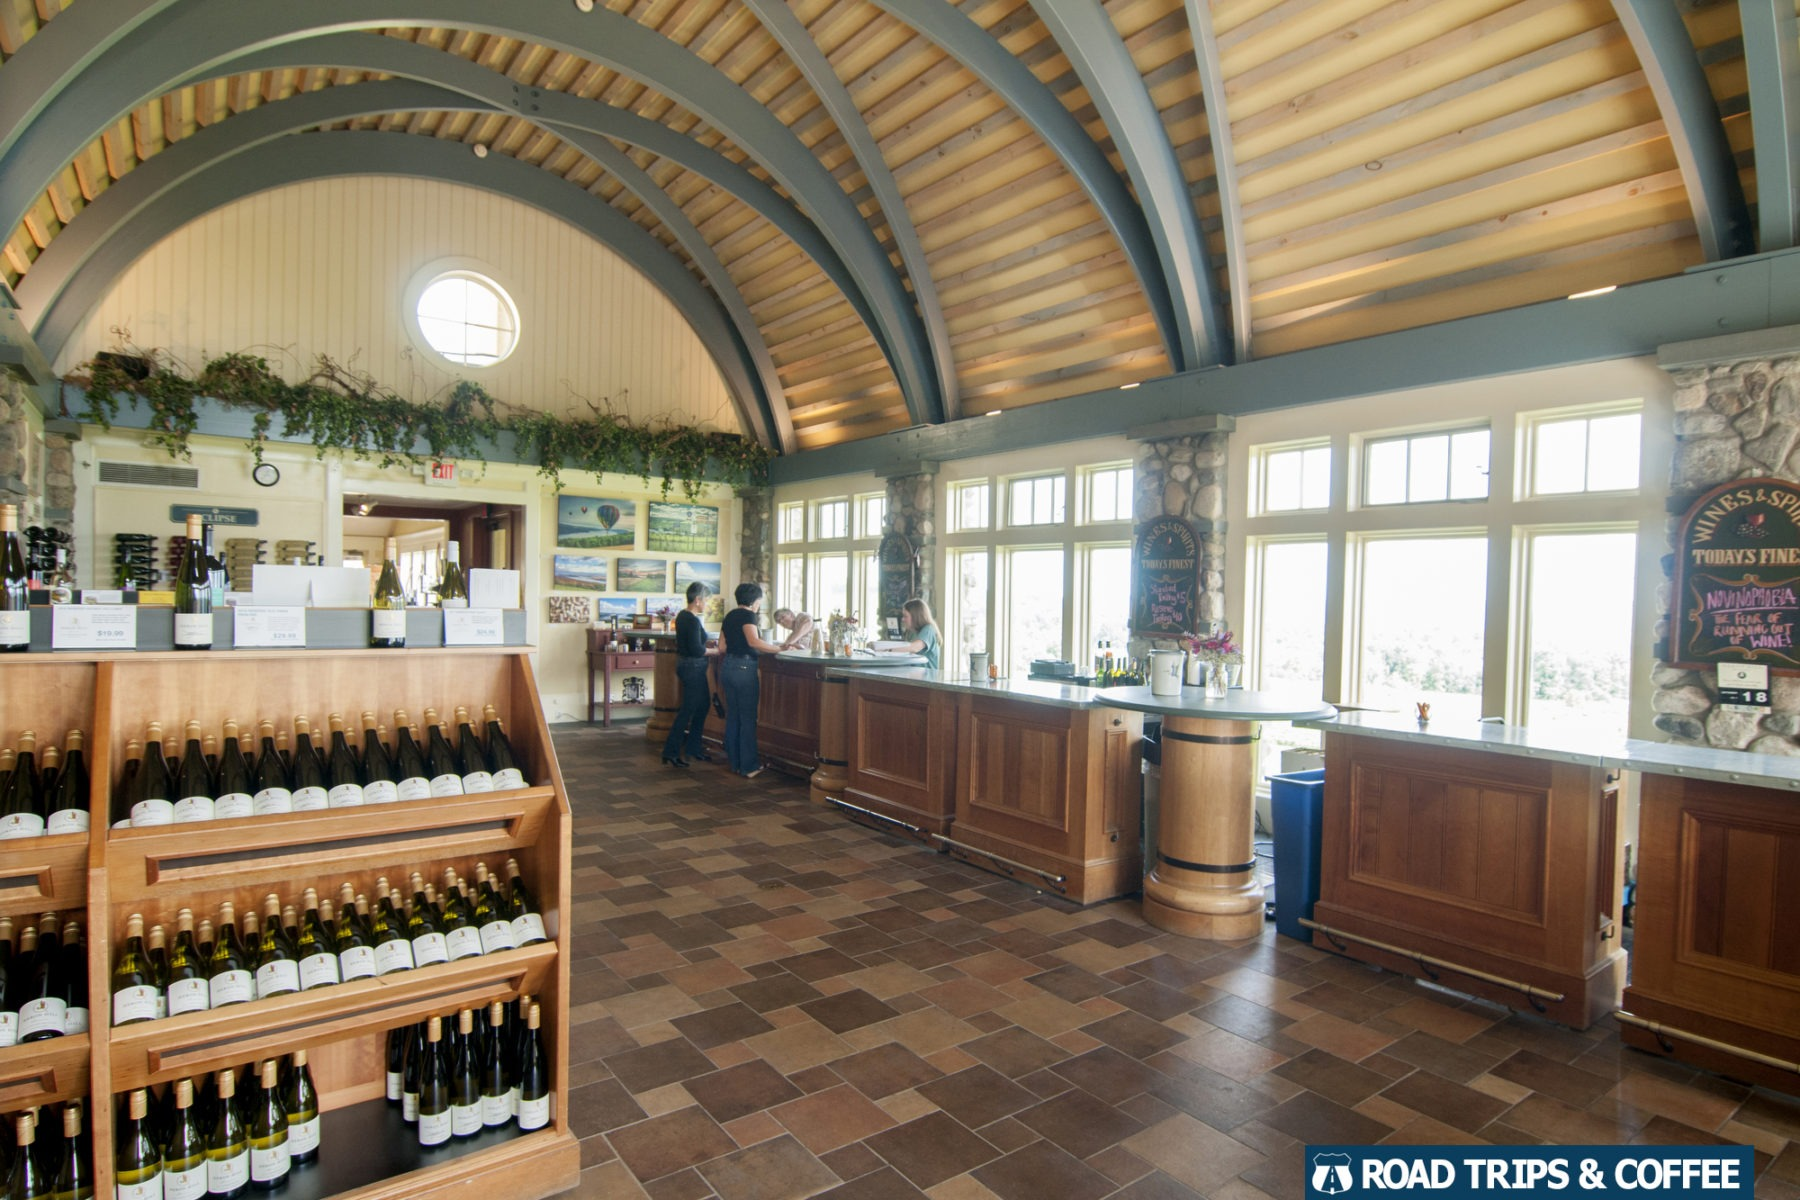 A cavernous tasting room filled with racks of wine and a tasting bar at Heron Hill Winery in Hammondsport, New York